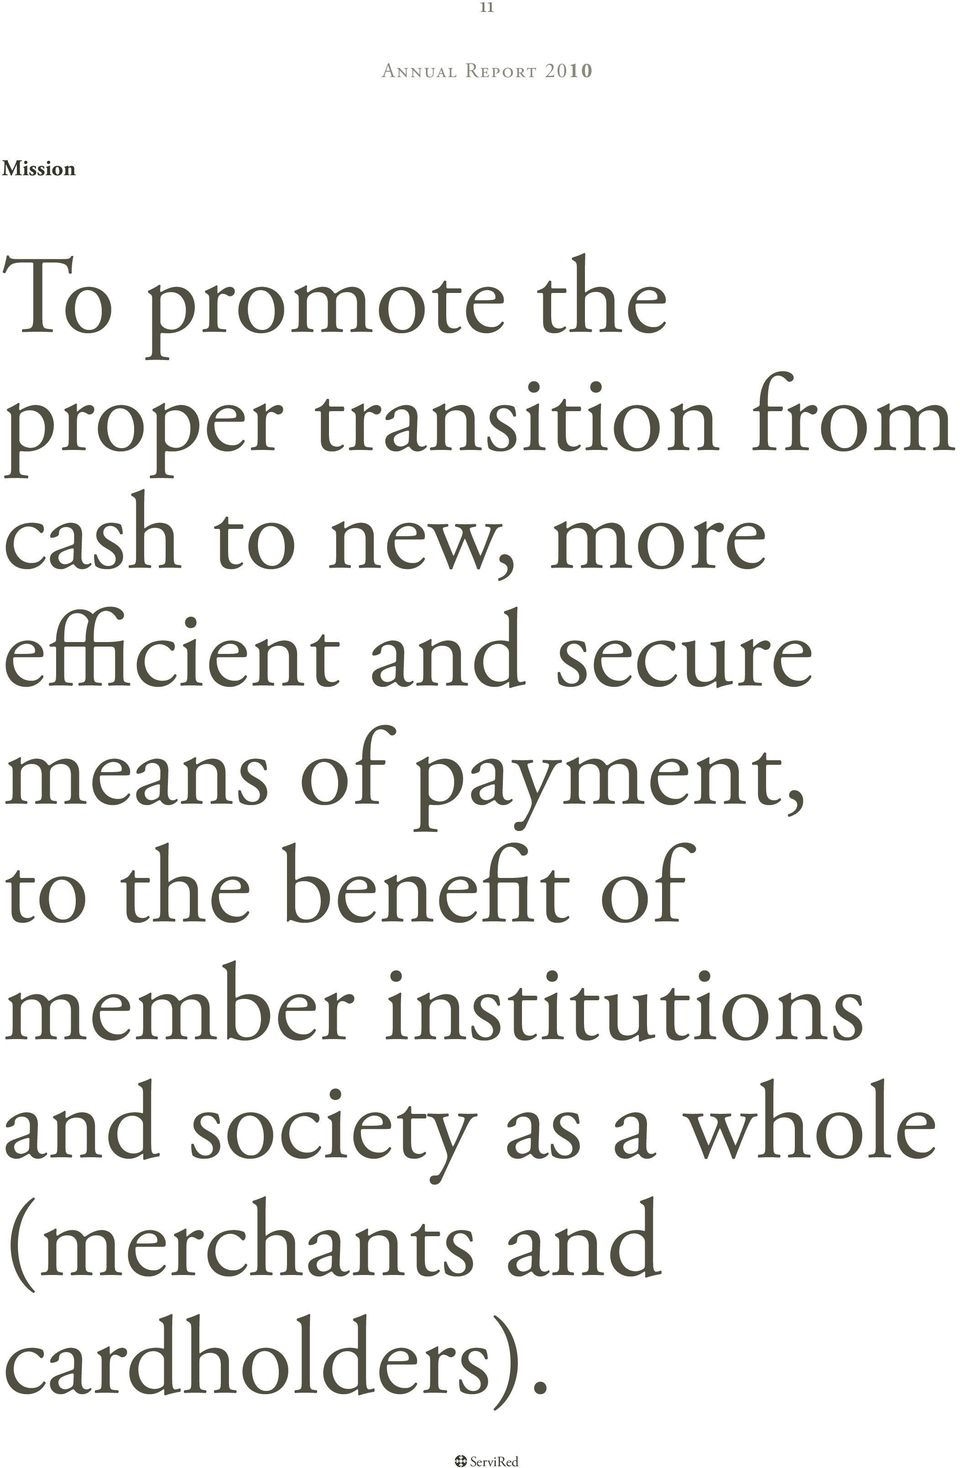 means of payment, to the benefit of member institutions